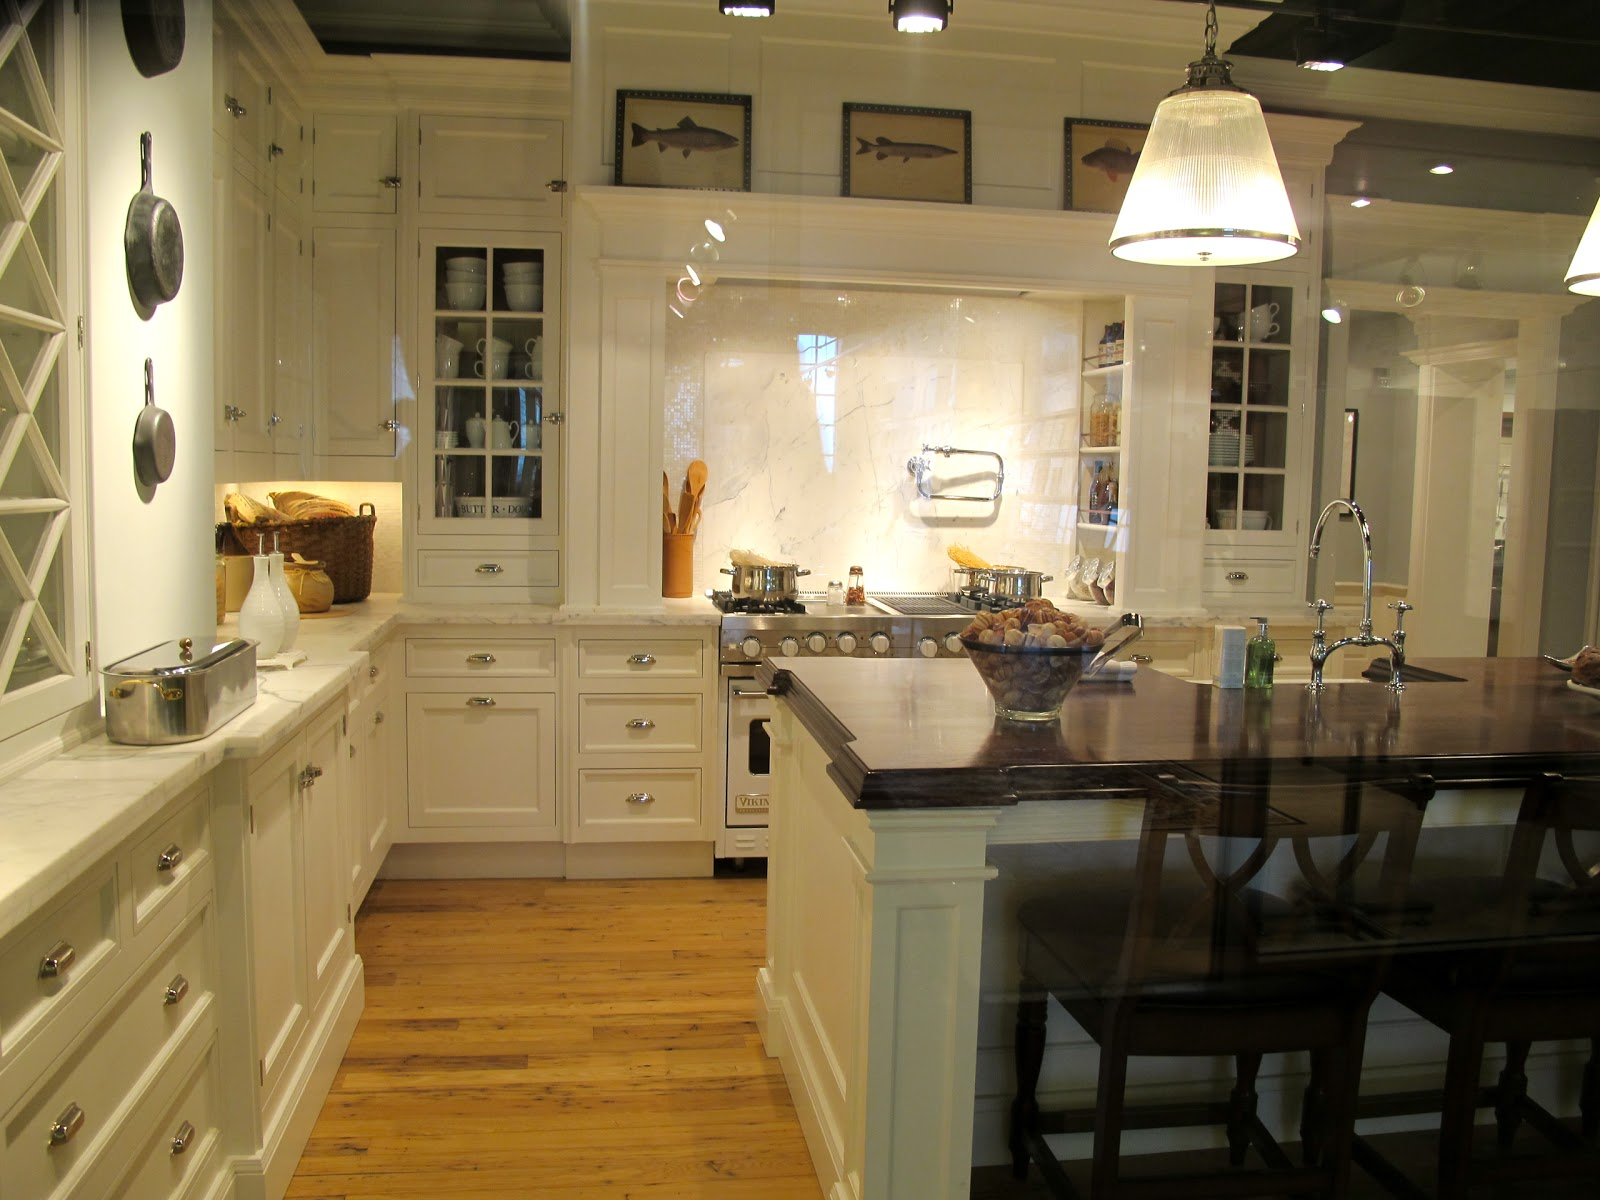 Jenny steffens hobick kitchens the most amazing kitchens kitchen inspiration for classic - Kitchen remodel designs ...